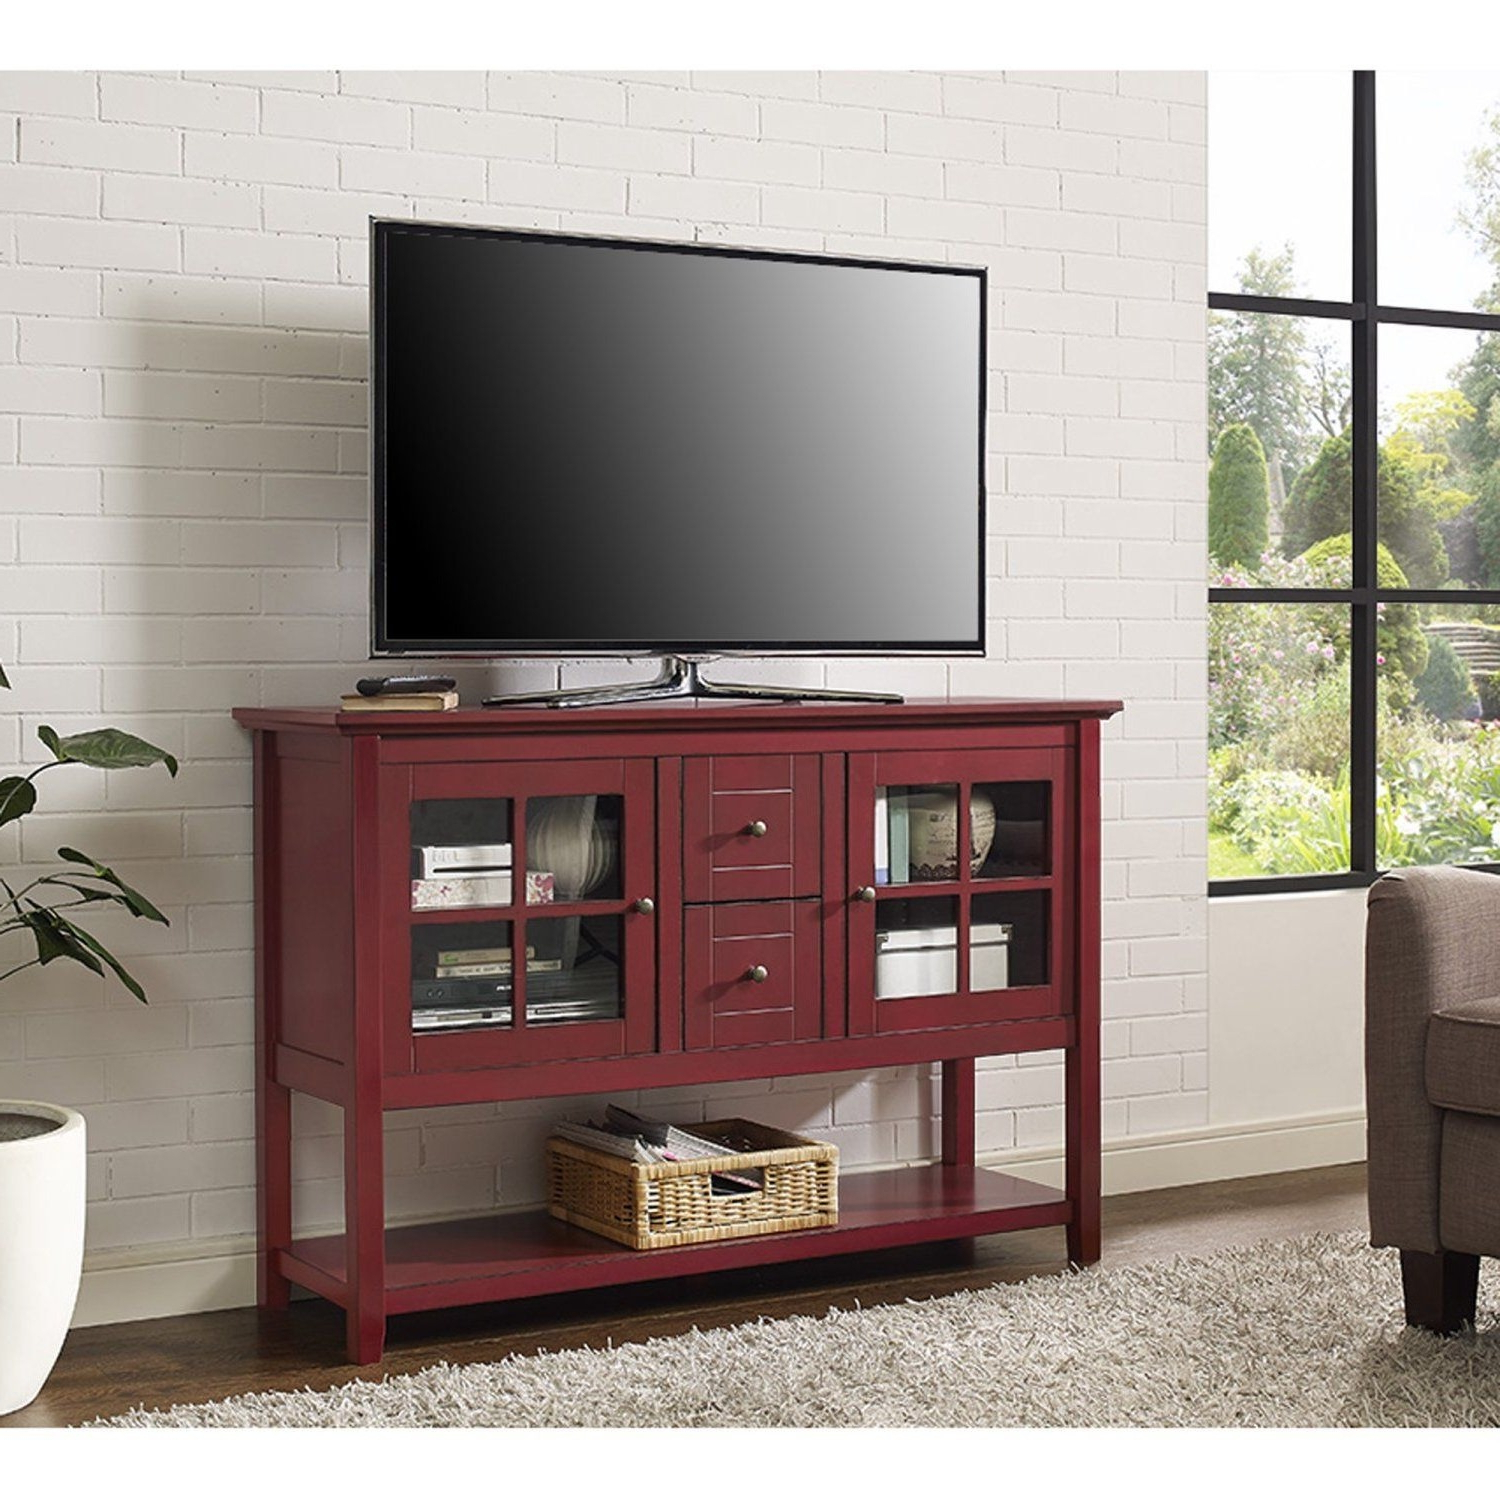 "Red Tv Stands Throughout Recent Red Tv Stand 55"" Wood & Glass Media Console Cabinet Table Furniture (View 17 of 20)"